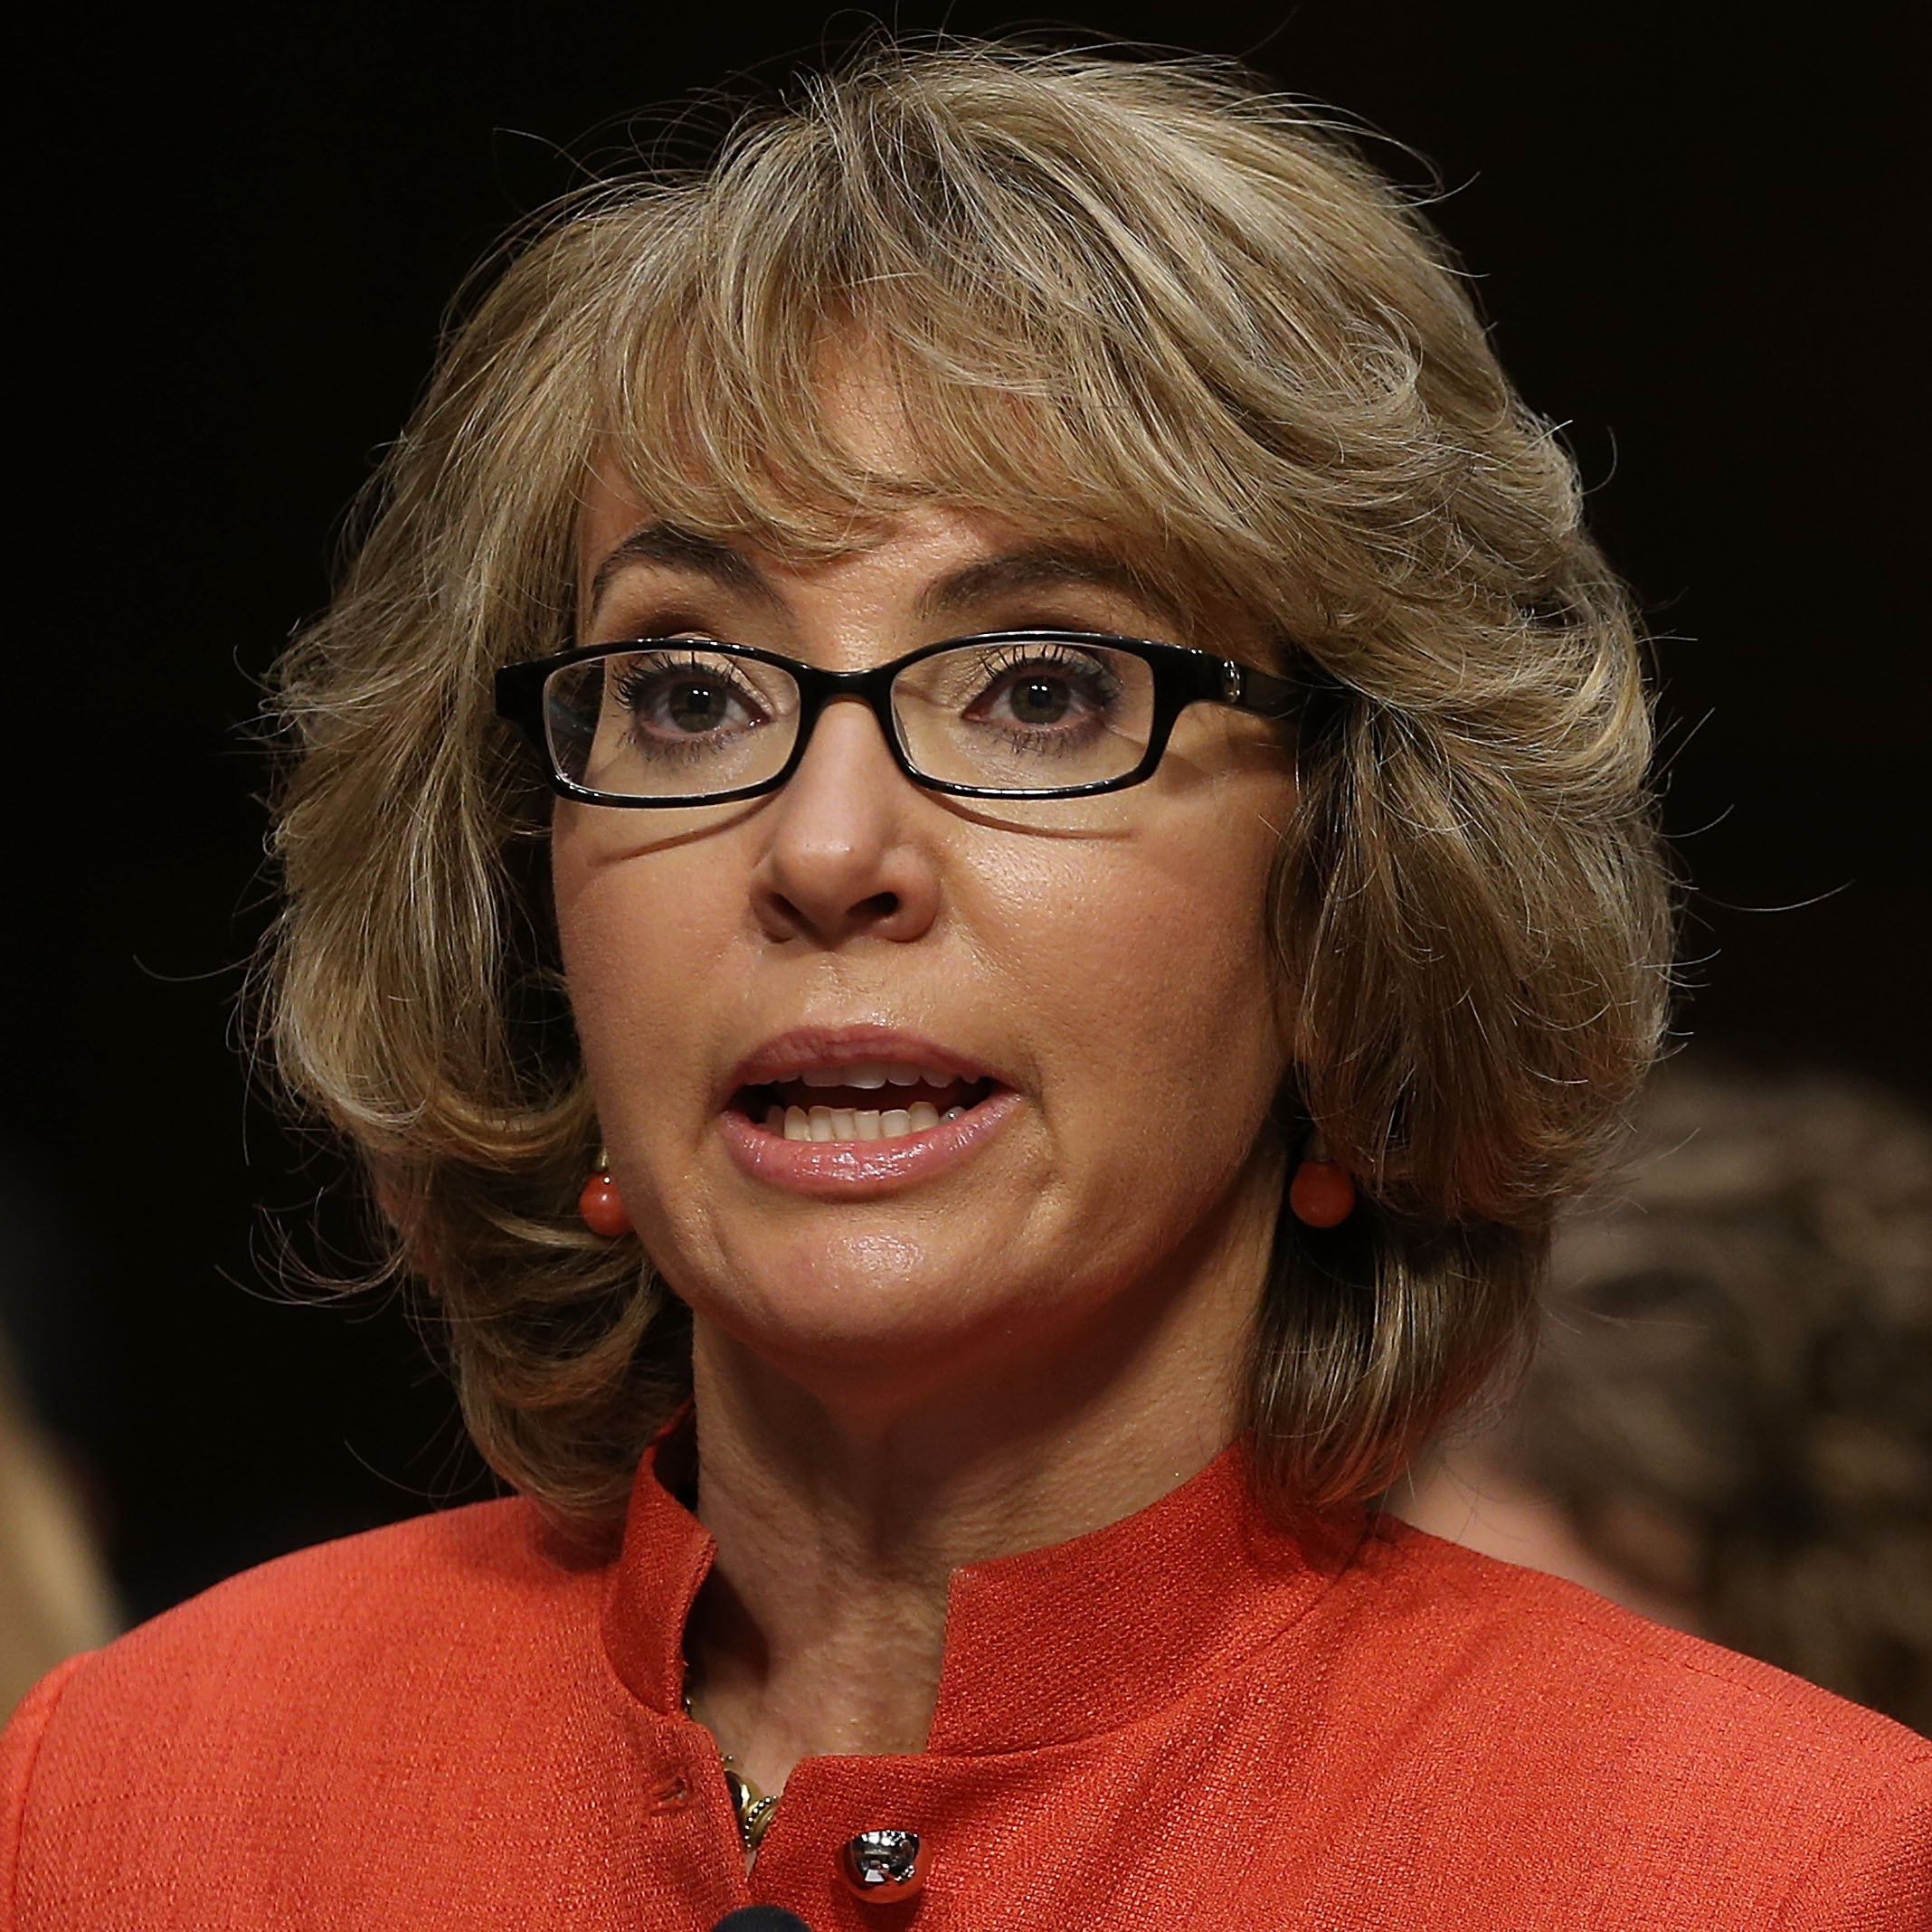 Former Rep. Gabrielle Giffords, D-Ariz., during Wednesday's Senate hearing on gun violence.